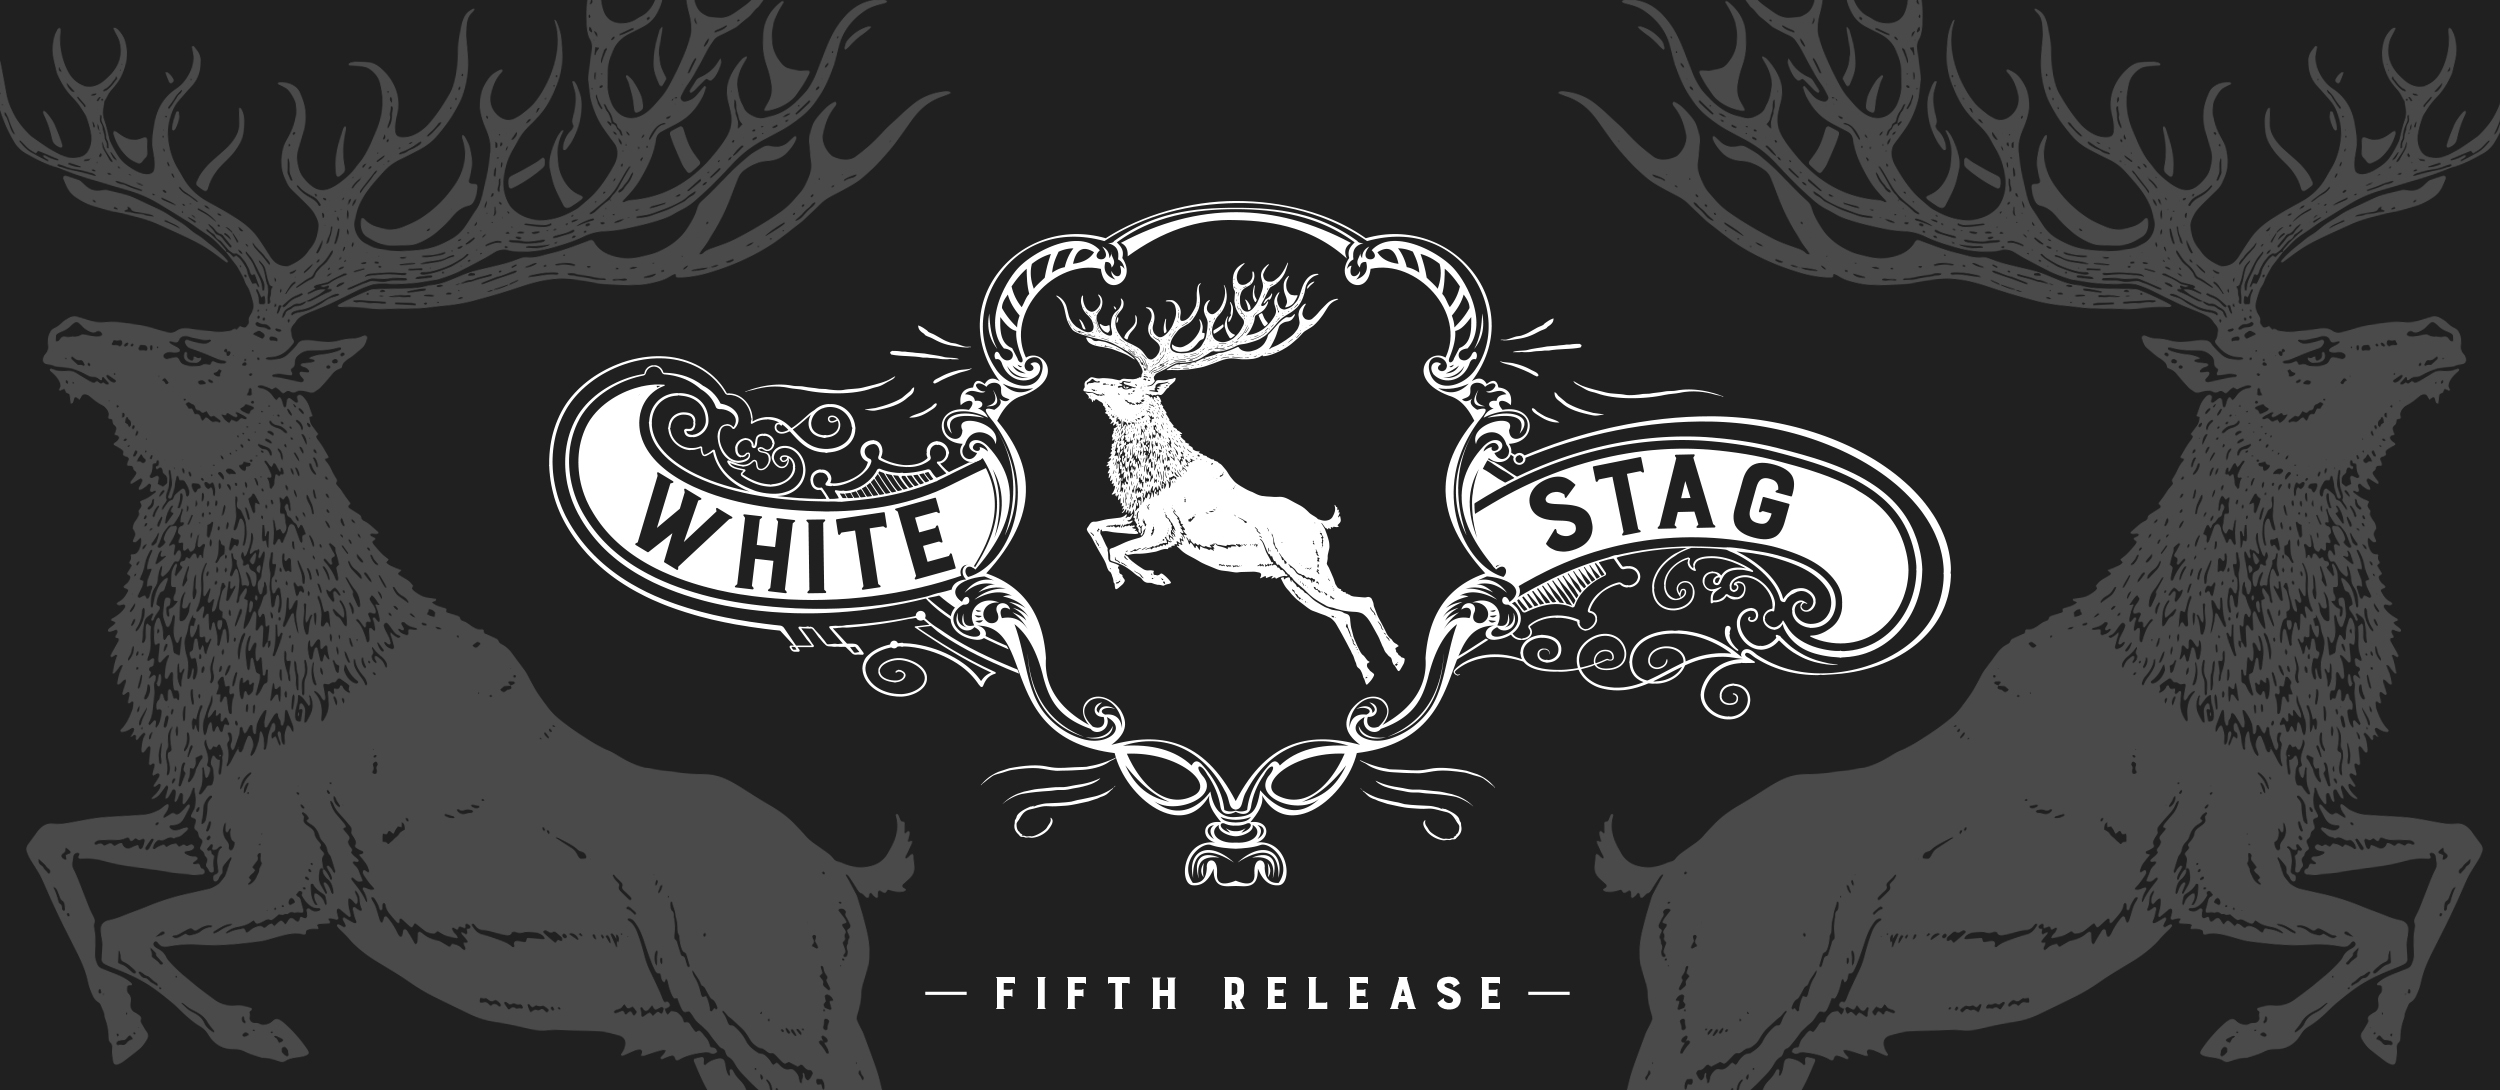 White Stag Fifth Release social logo